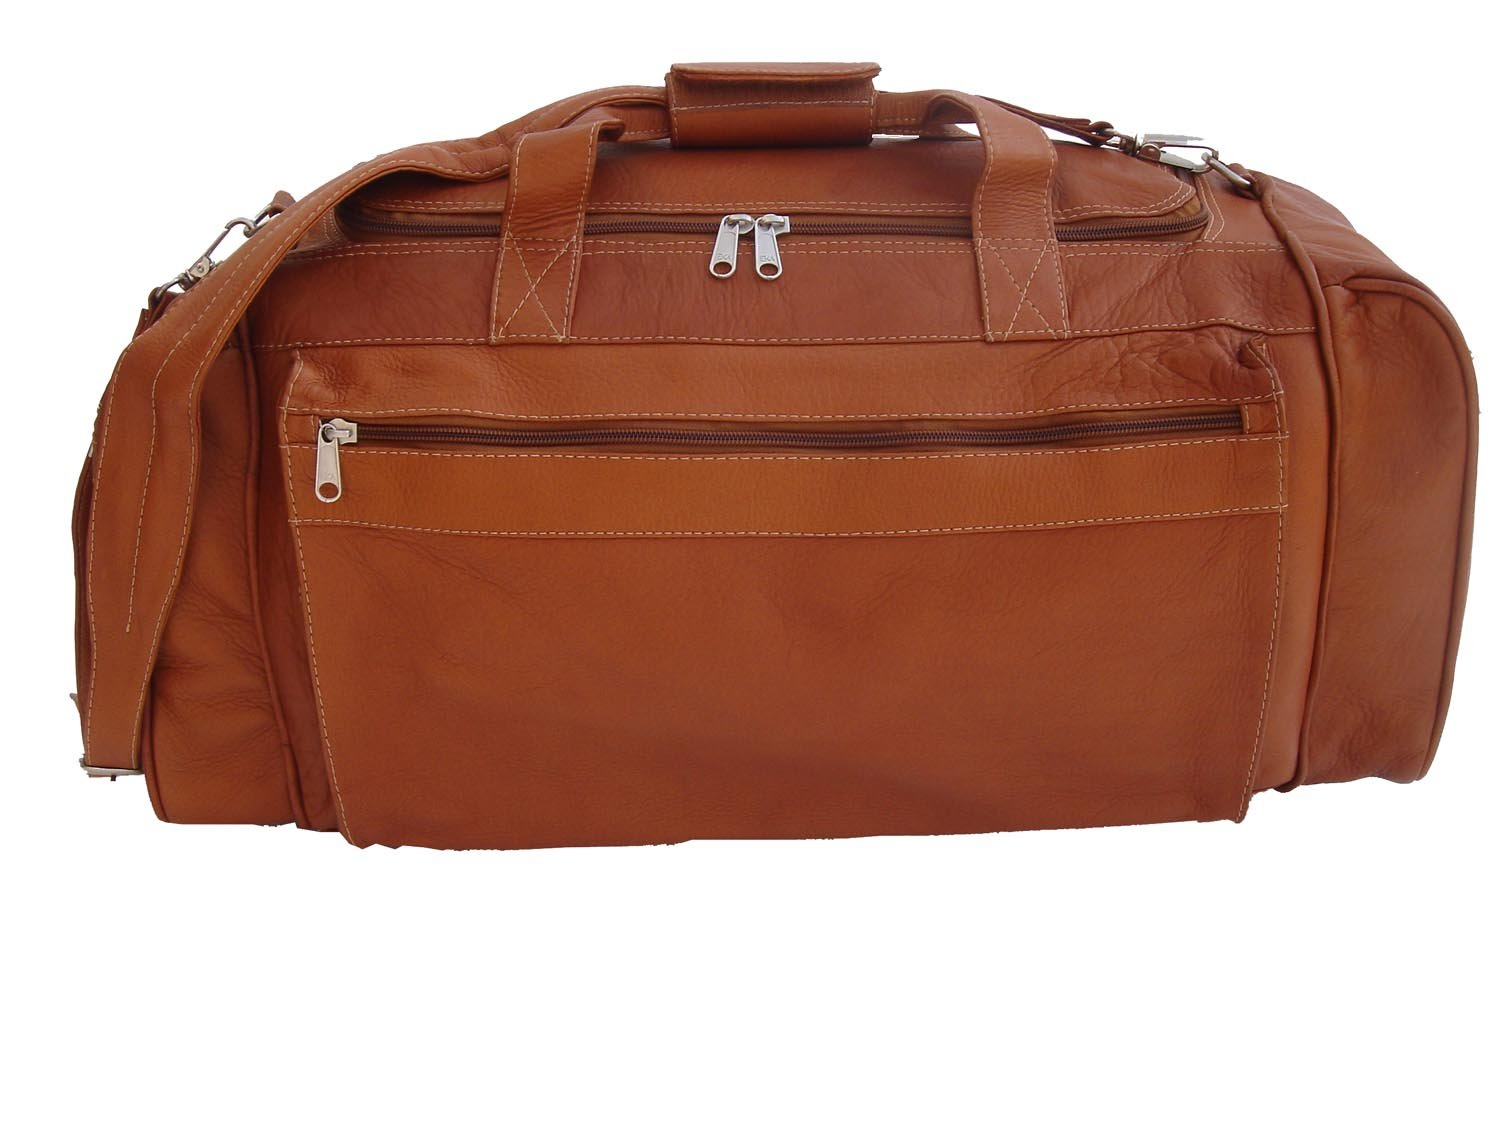 Piel Leather Large Duffel Bag in Saddle